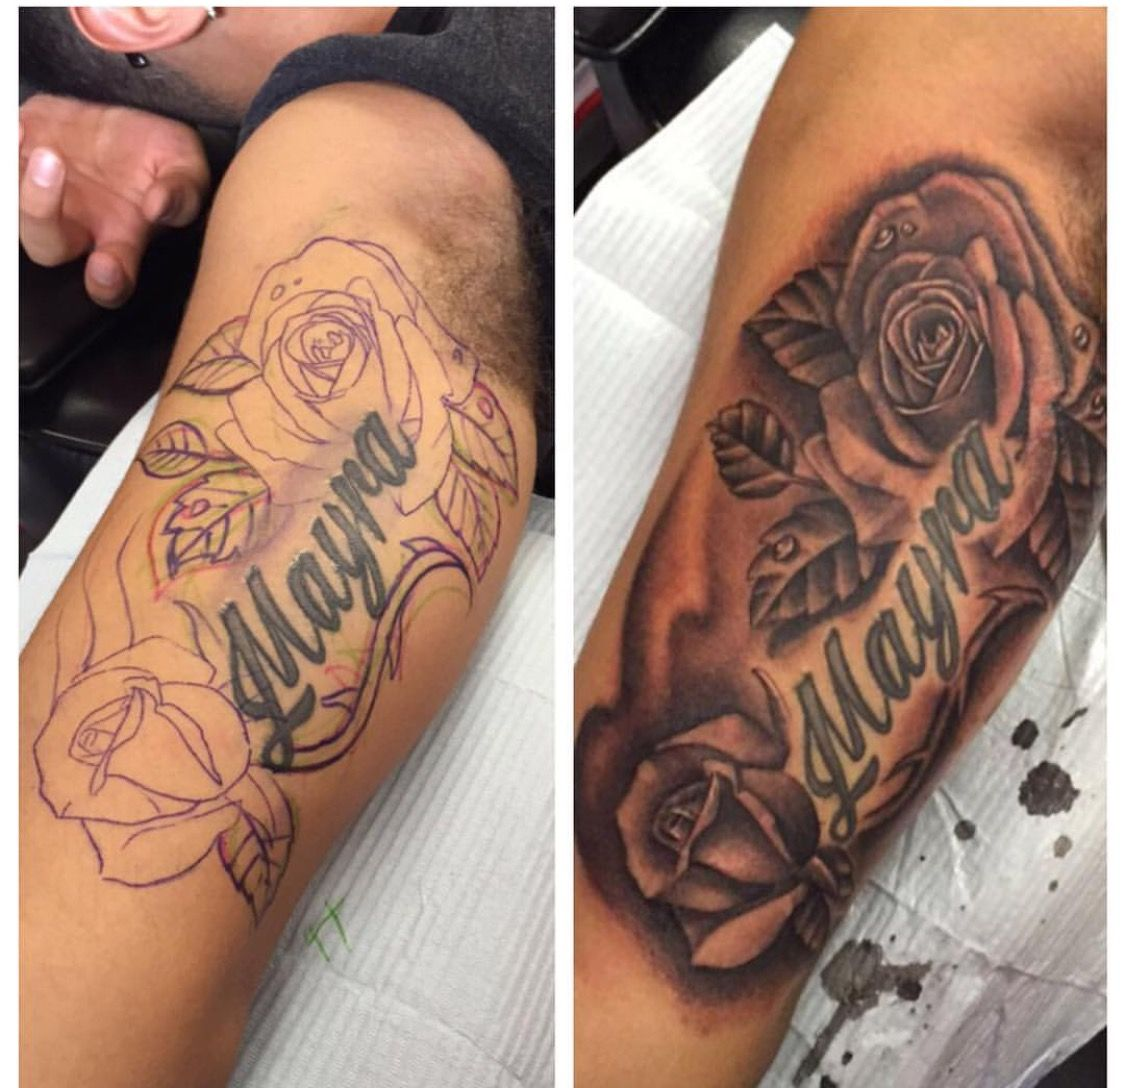 Pin by Jay on tattoos Cursive tattoos, Tattoos for